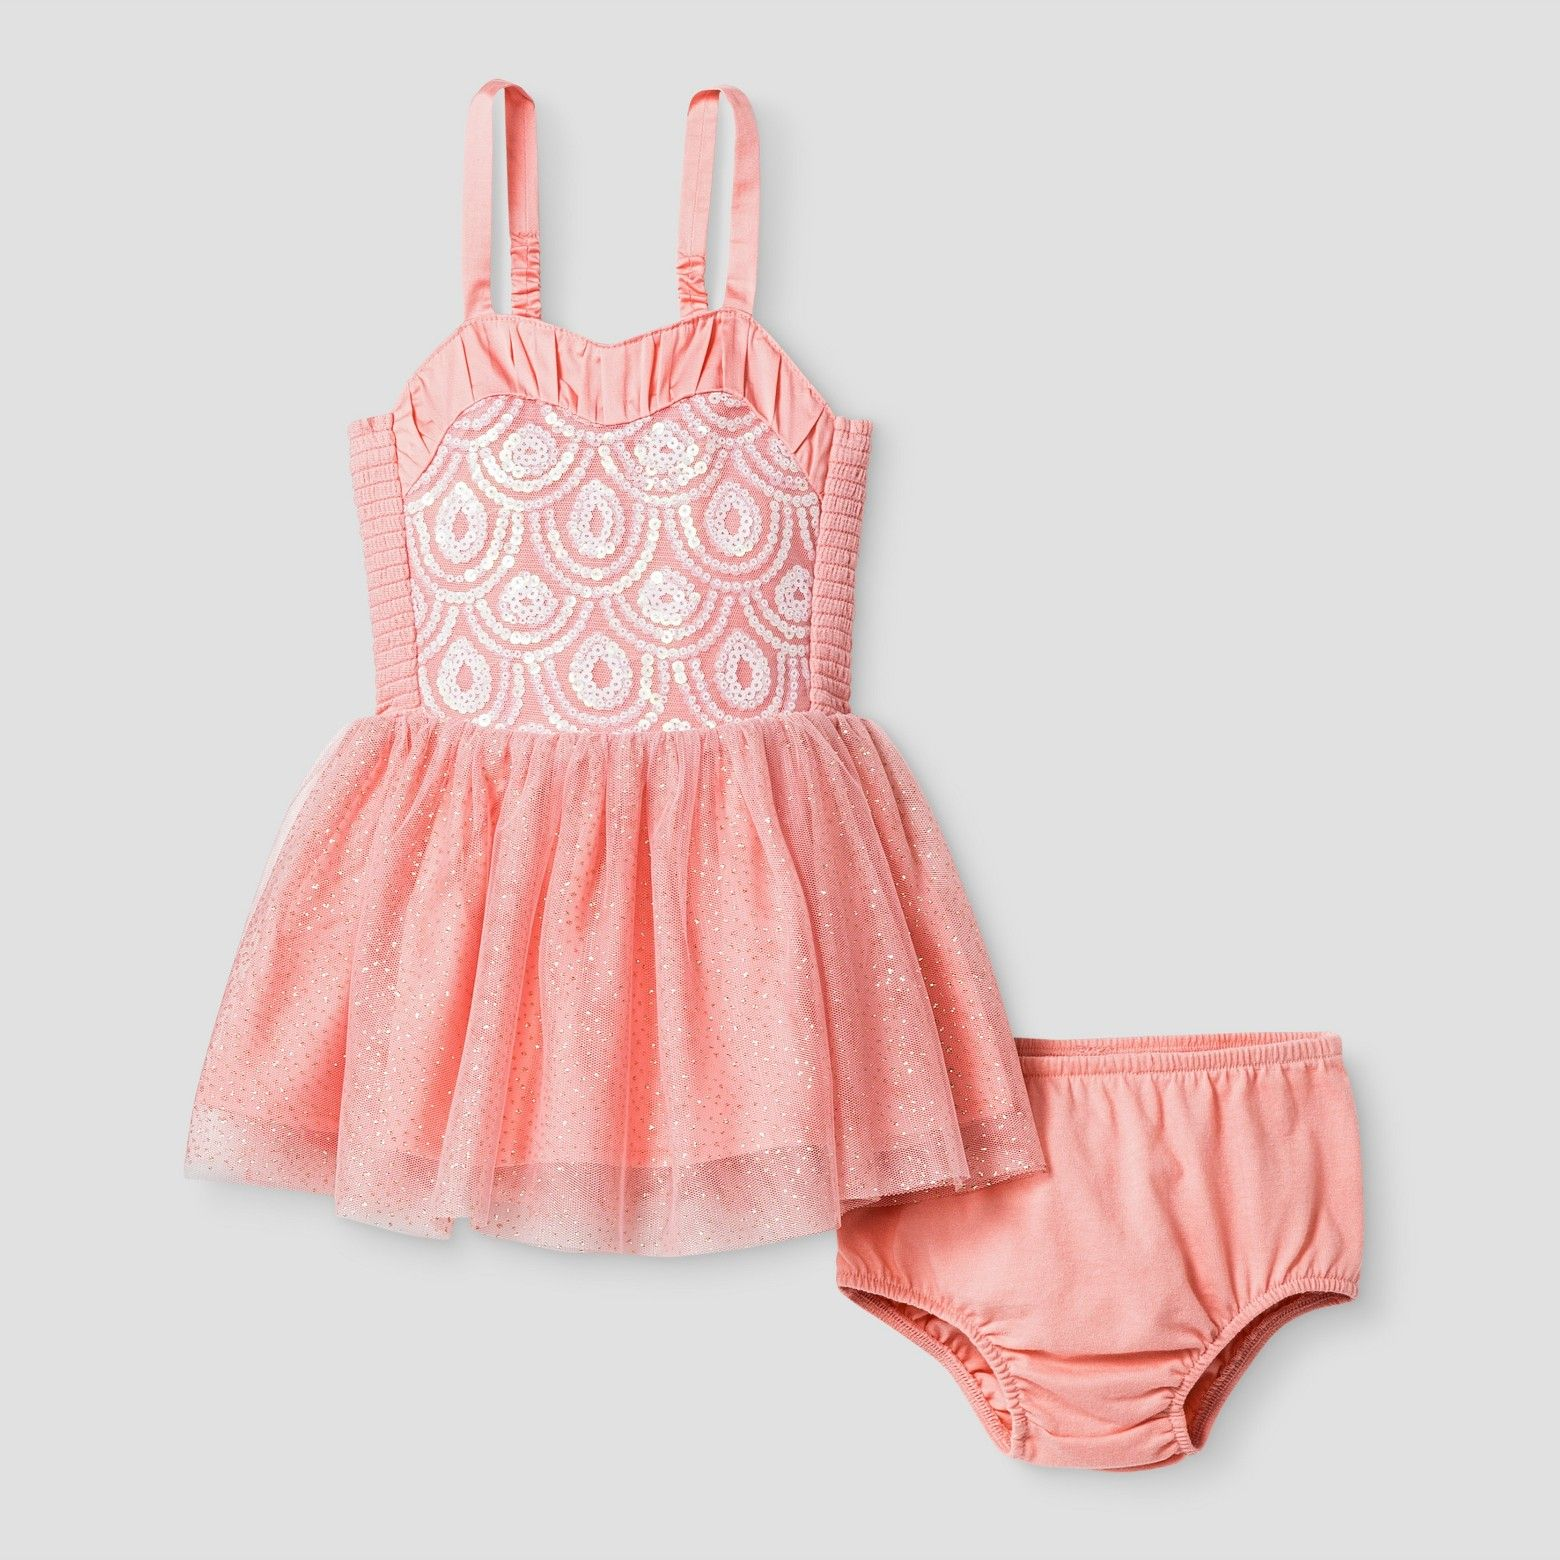 986775a7a $19.99 The Baby Girls' Tulle Scallop A-Line Dress by Genuine Kids from  OshKosh was inspired by classic ballet ensembles. This pretty dress  features elegant ...